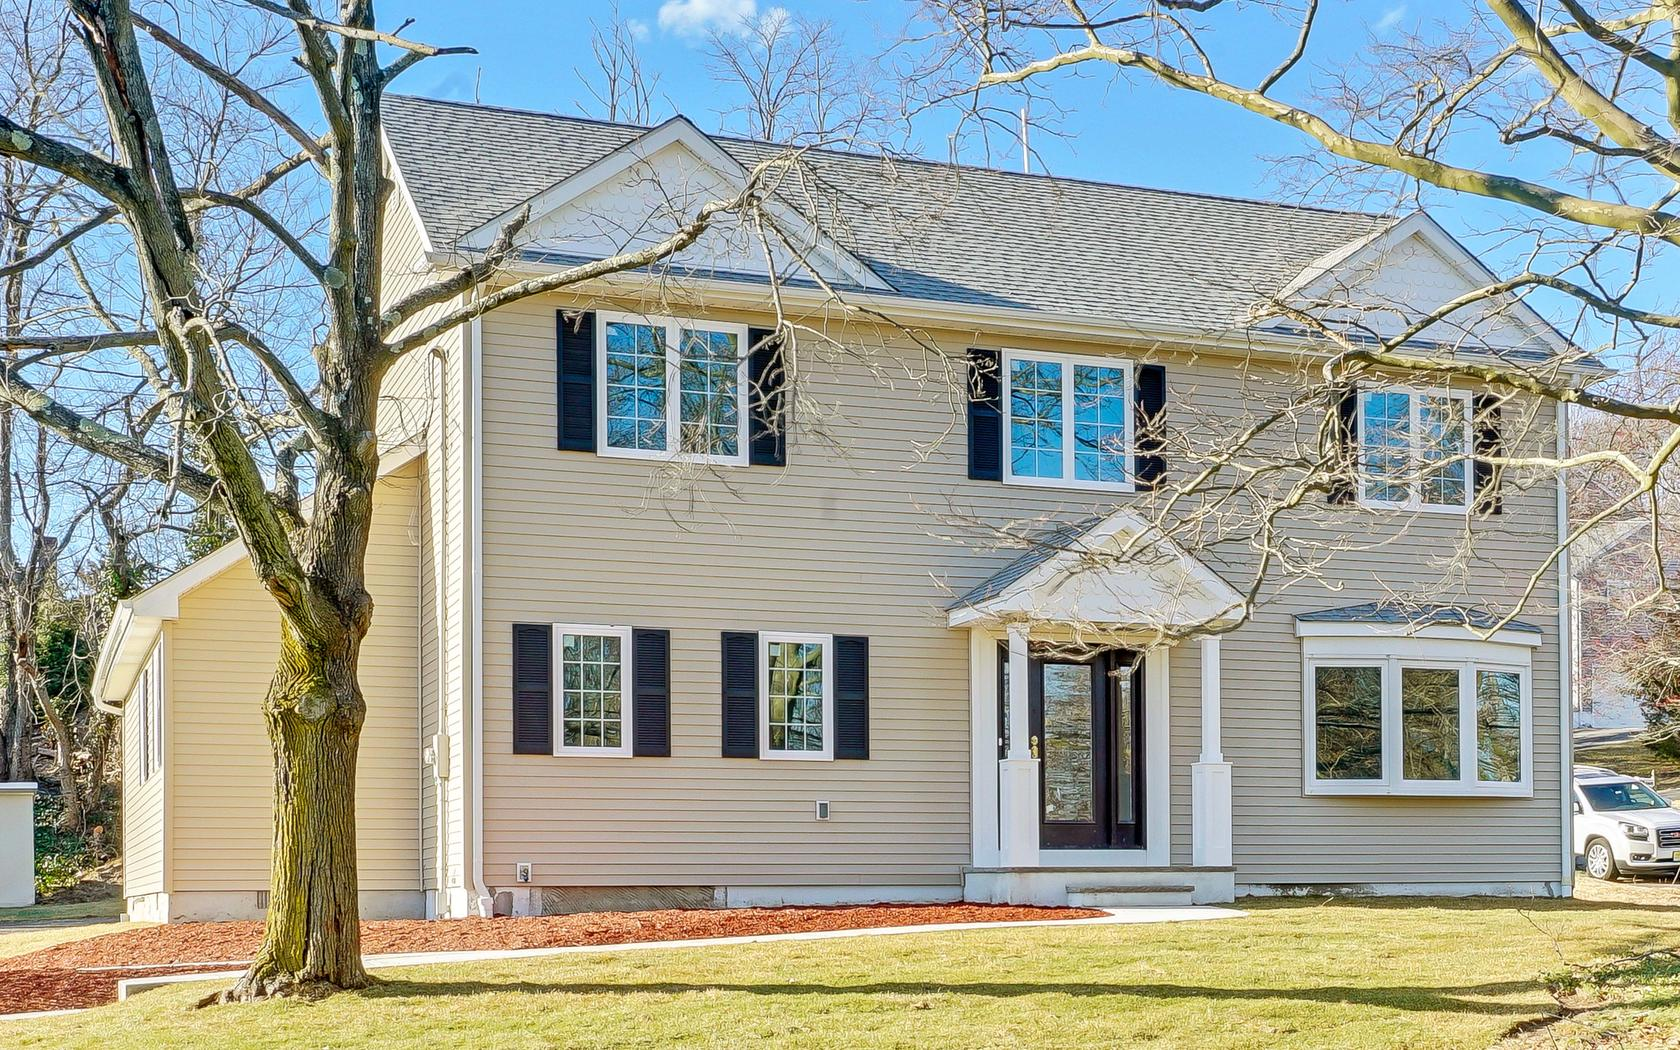 Single Family Home for Sale at Beautifully Renovated Colonial 1801 Allenwood Road Wall, New Jersey, 07719 United States